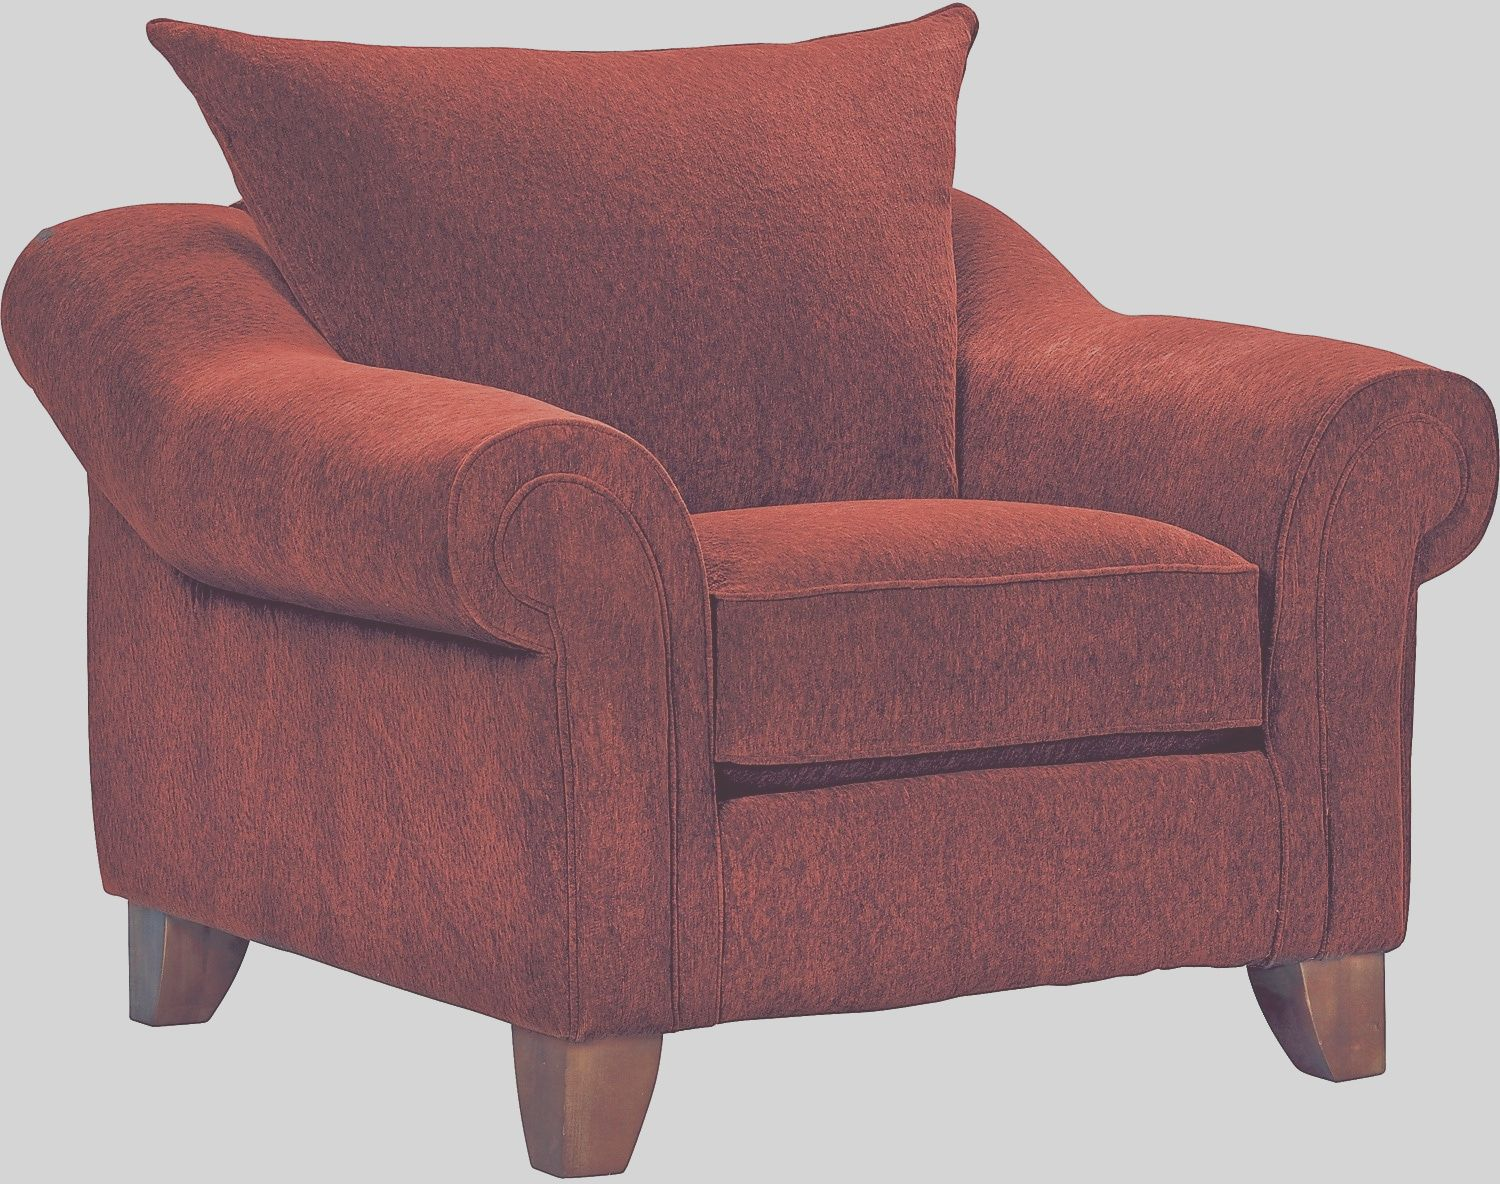 3 Latest the Brick Living Room Chairs Photography in 3  Brick